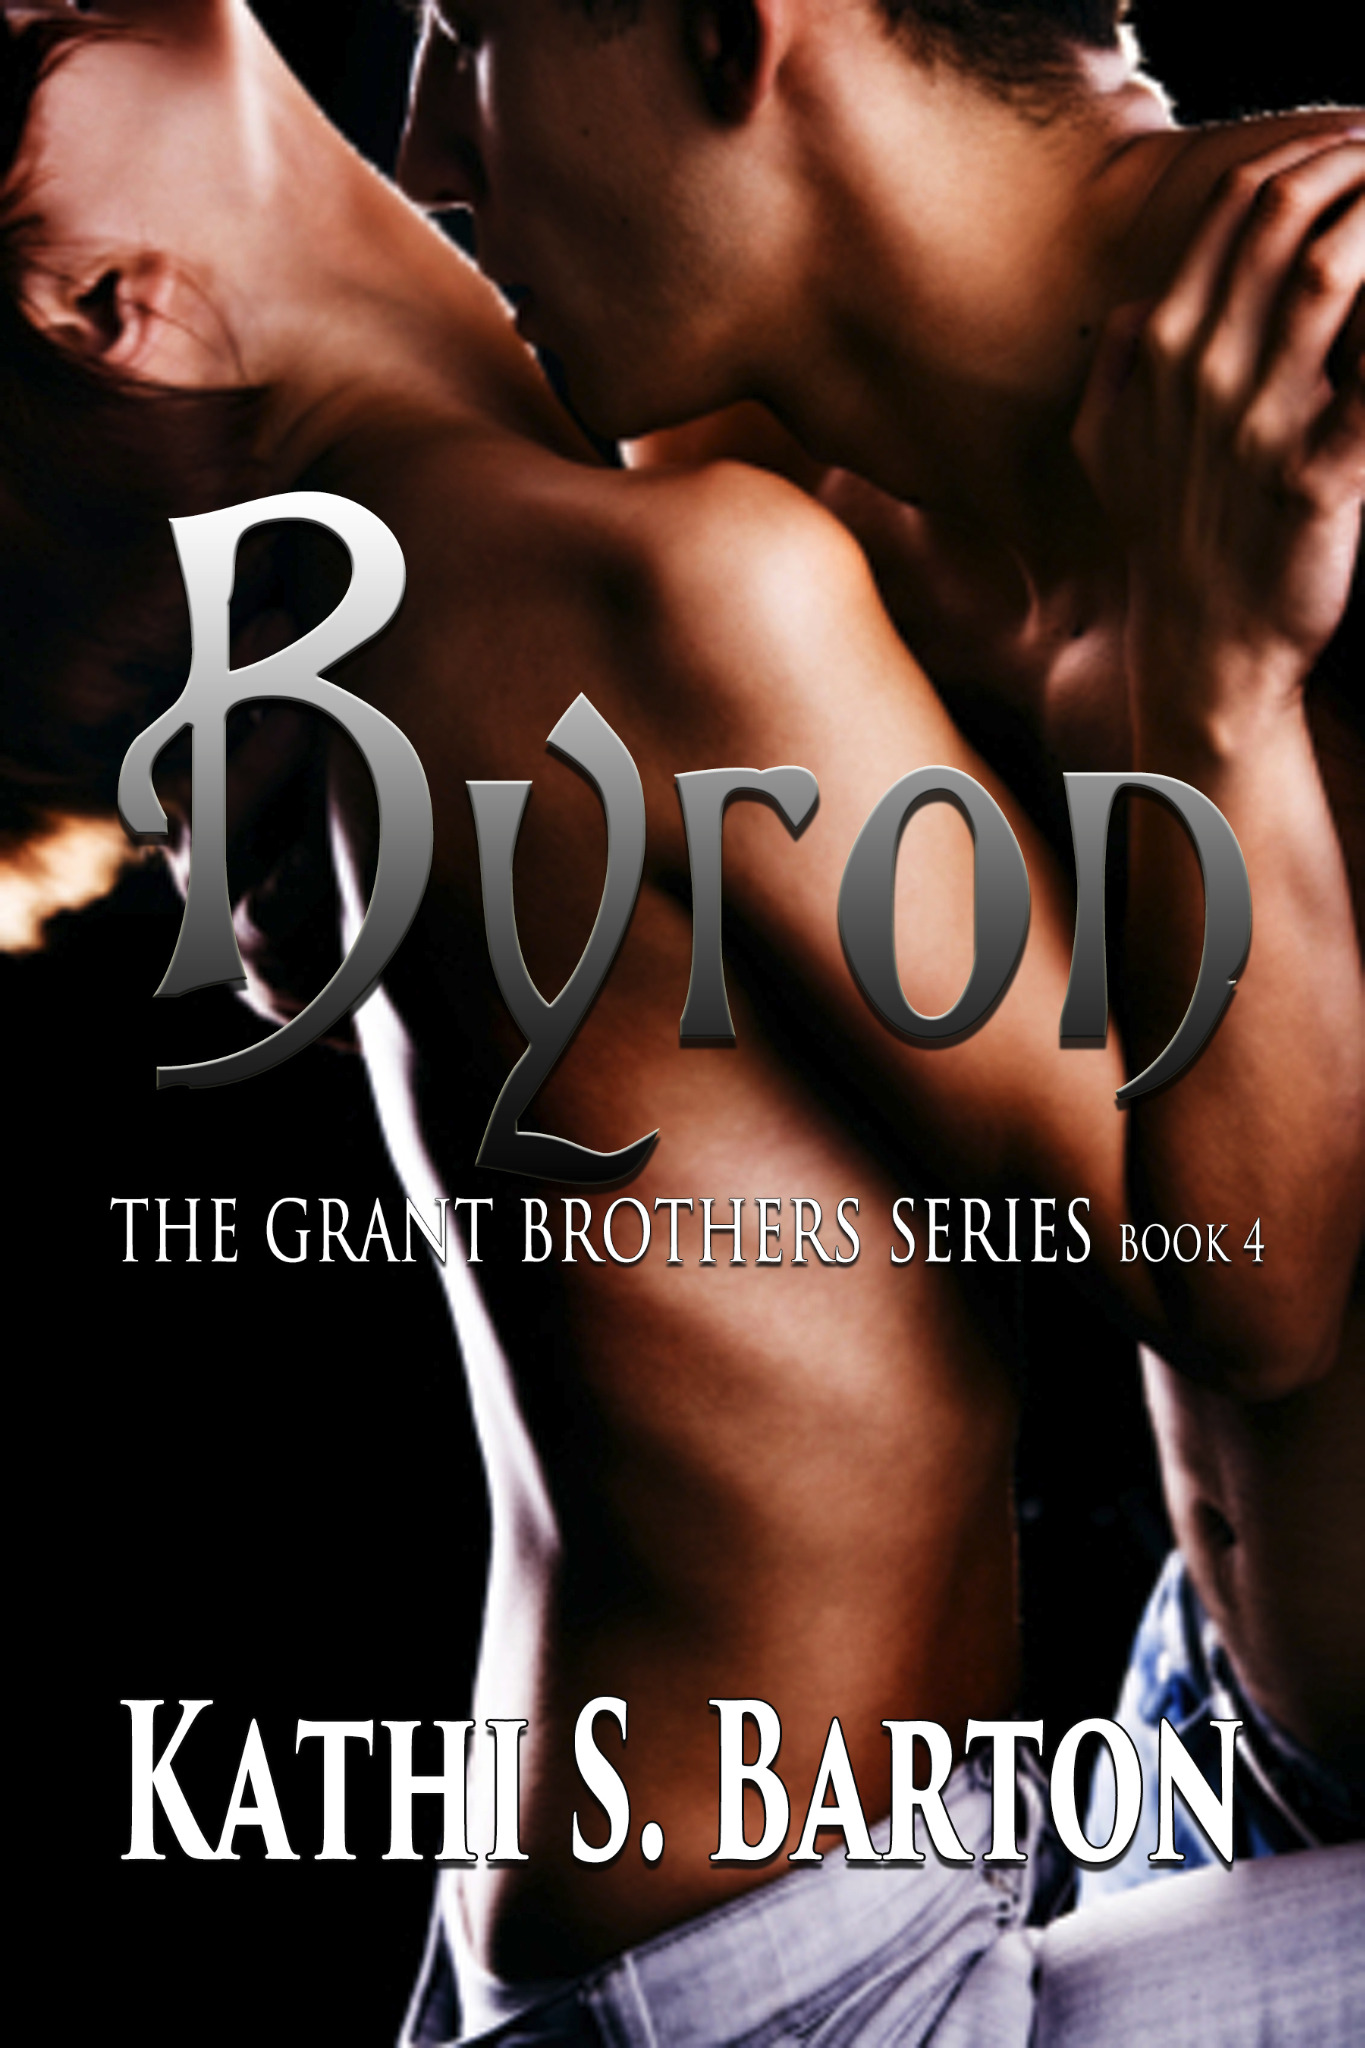 Byron - The Grant Brothers Series Book 4